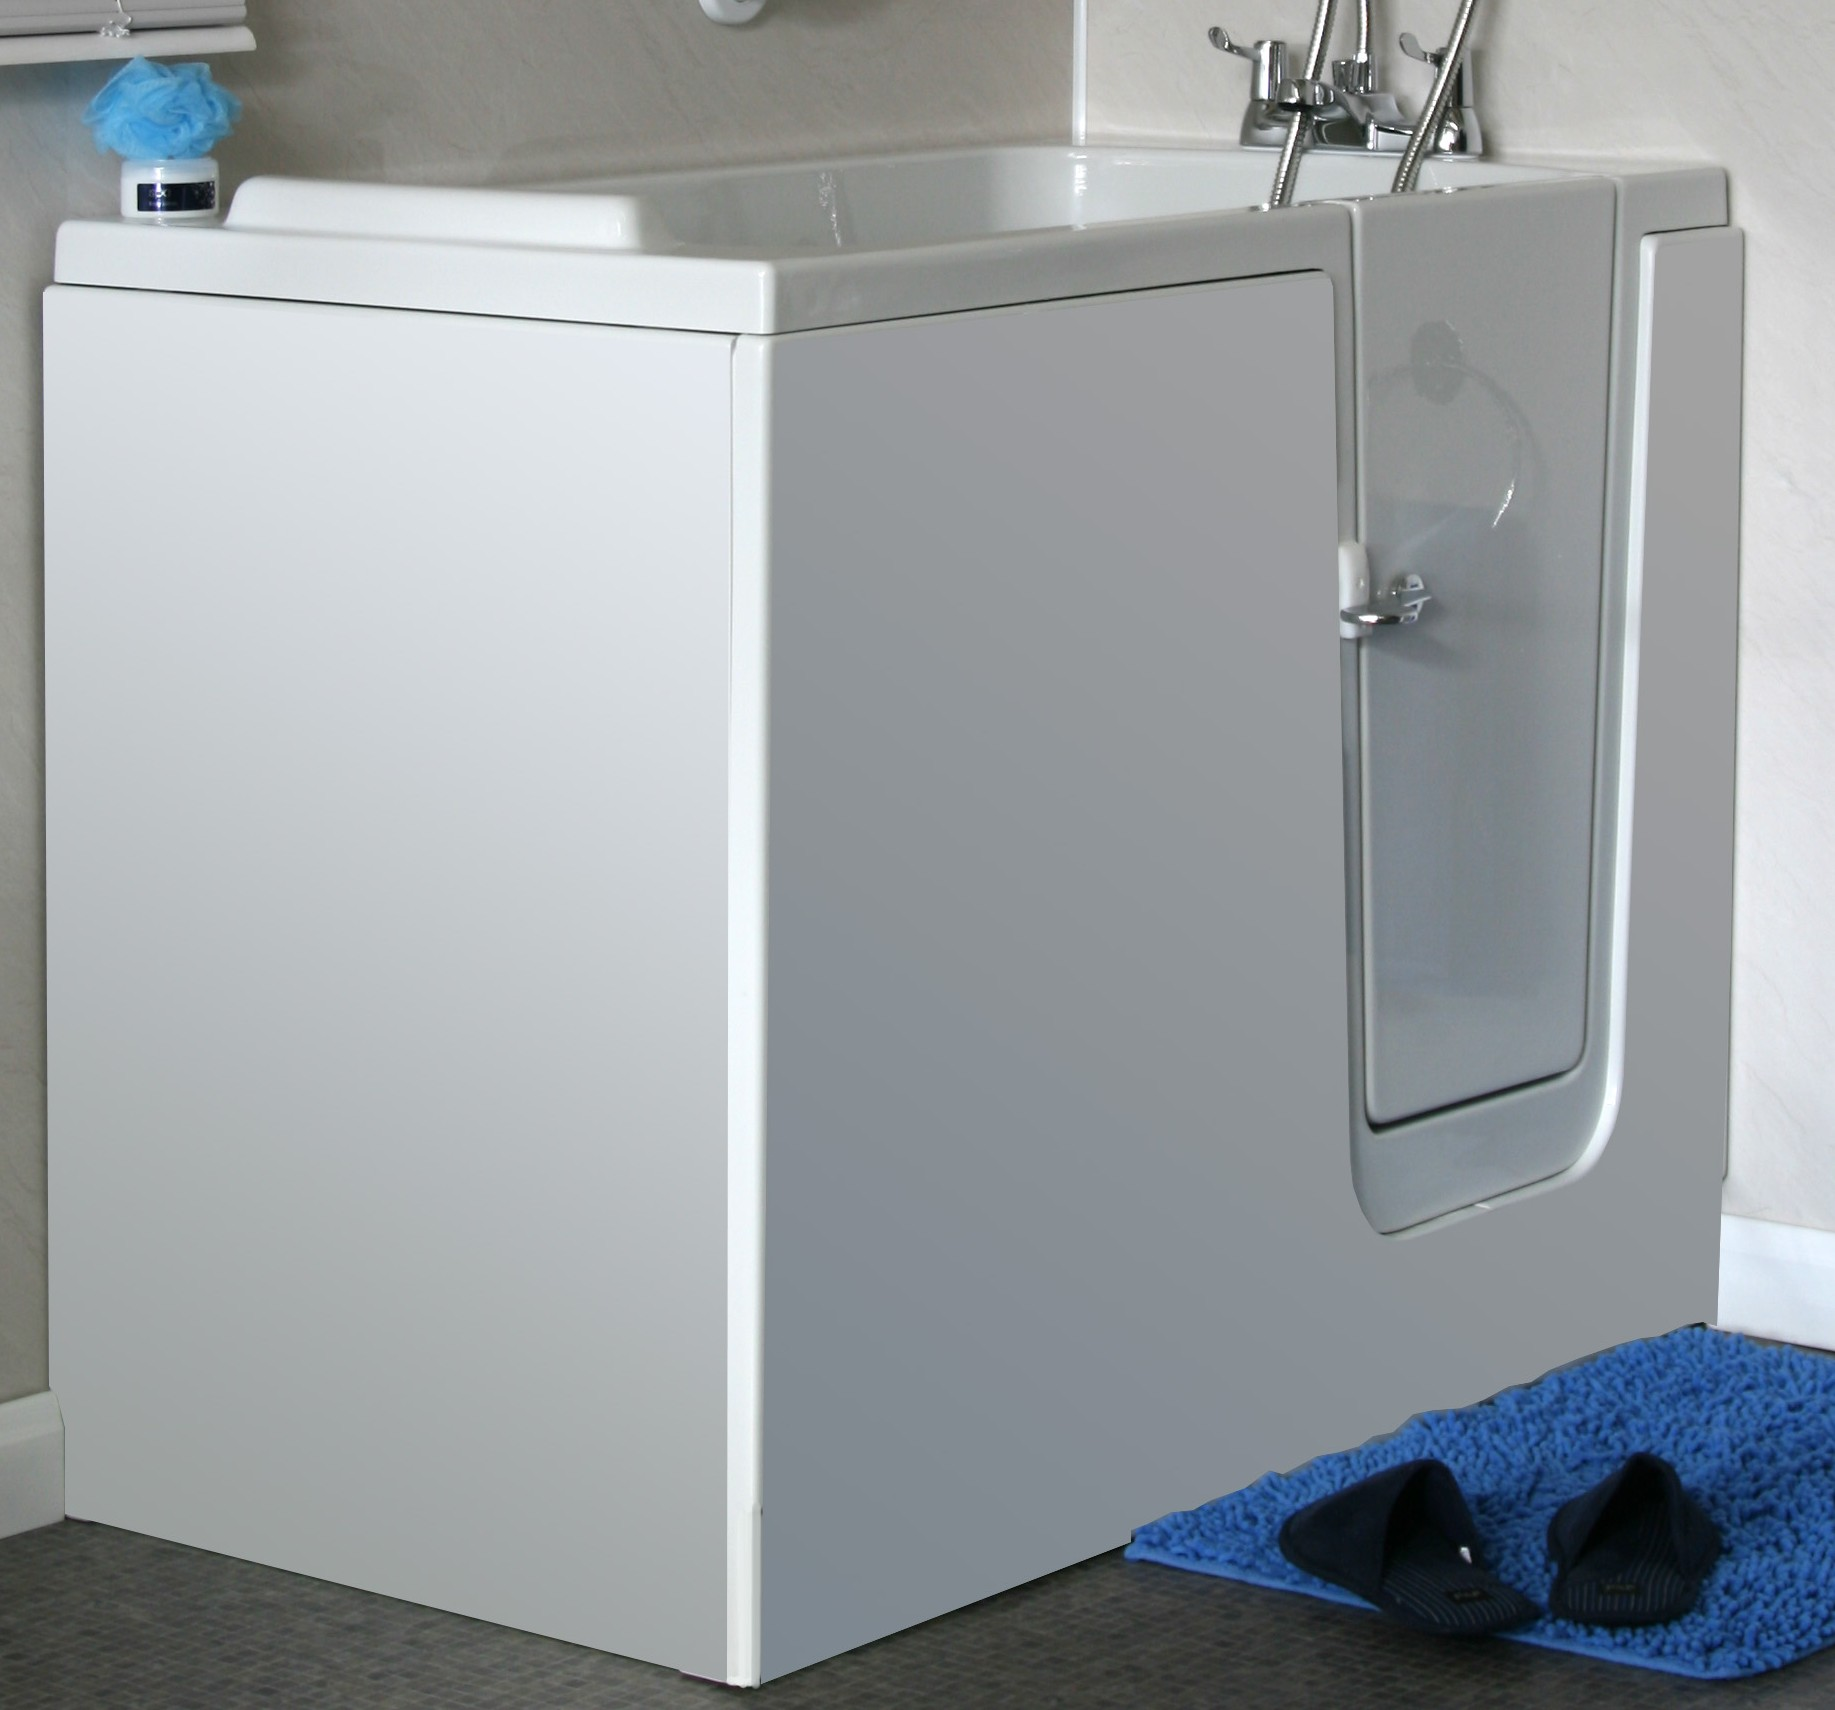 Sapphire 1 walk-in bath with white easy access door